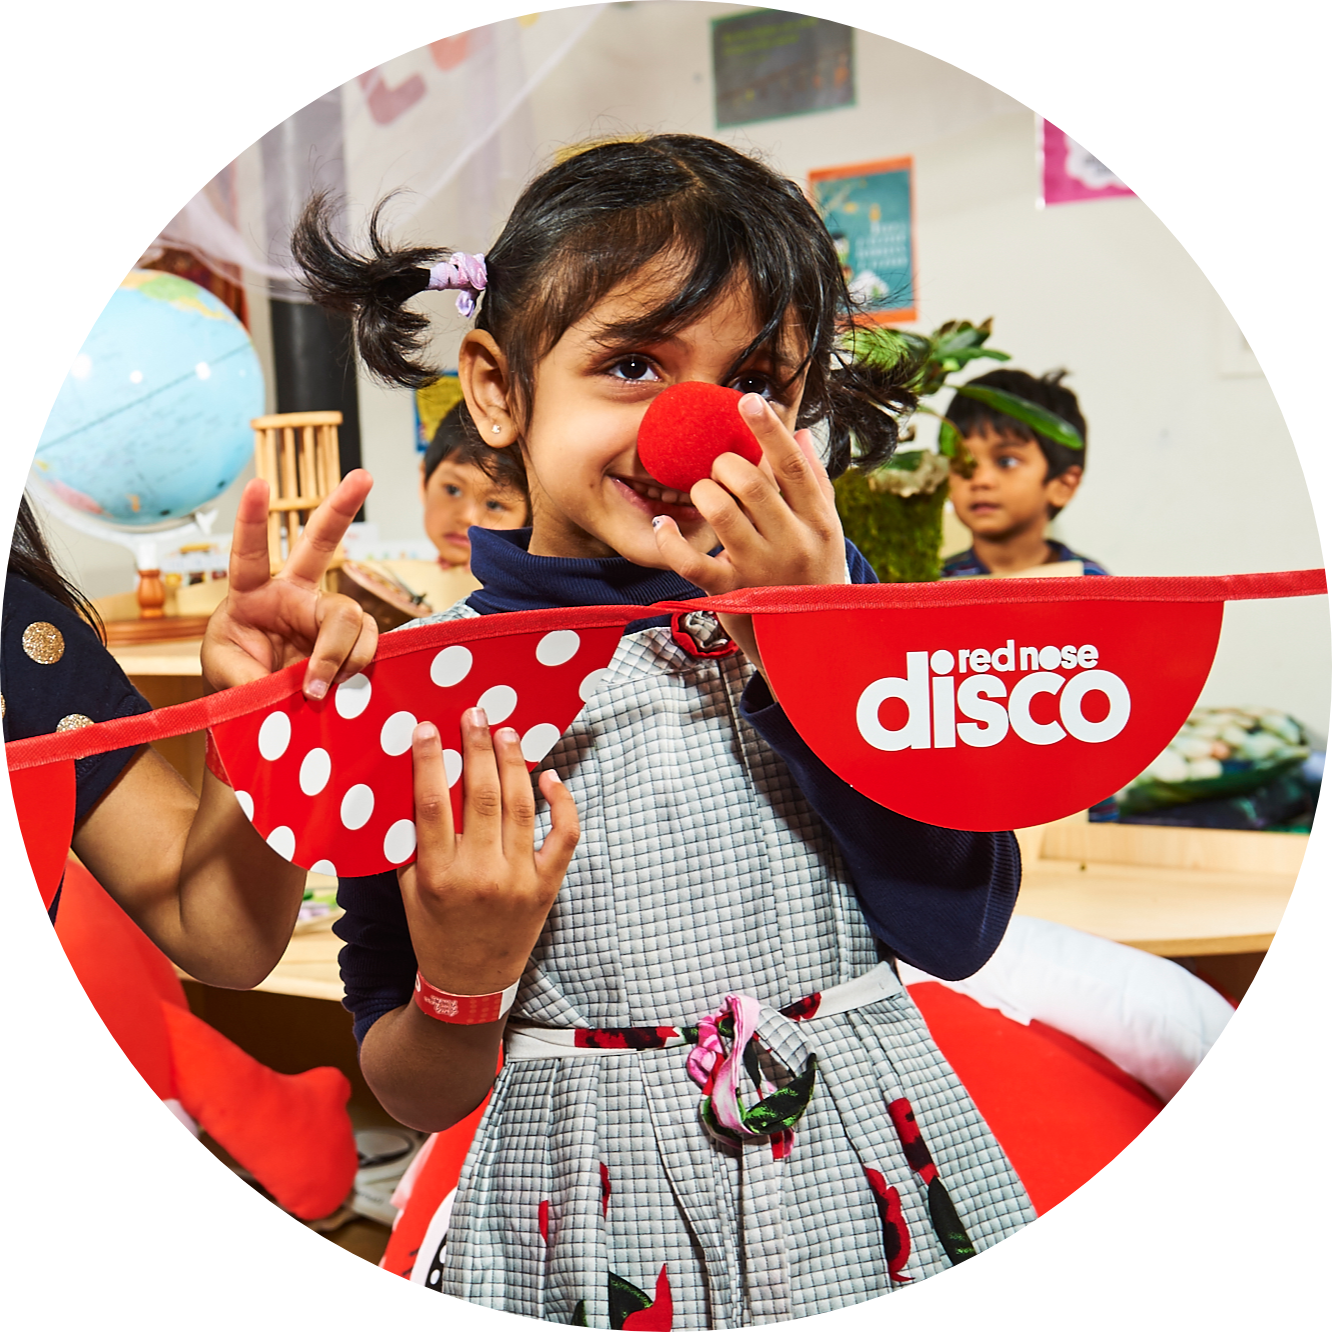 The Little Rockers Red Nose Disco Pack